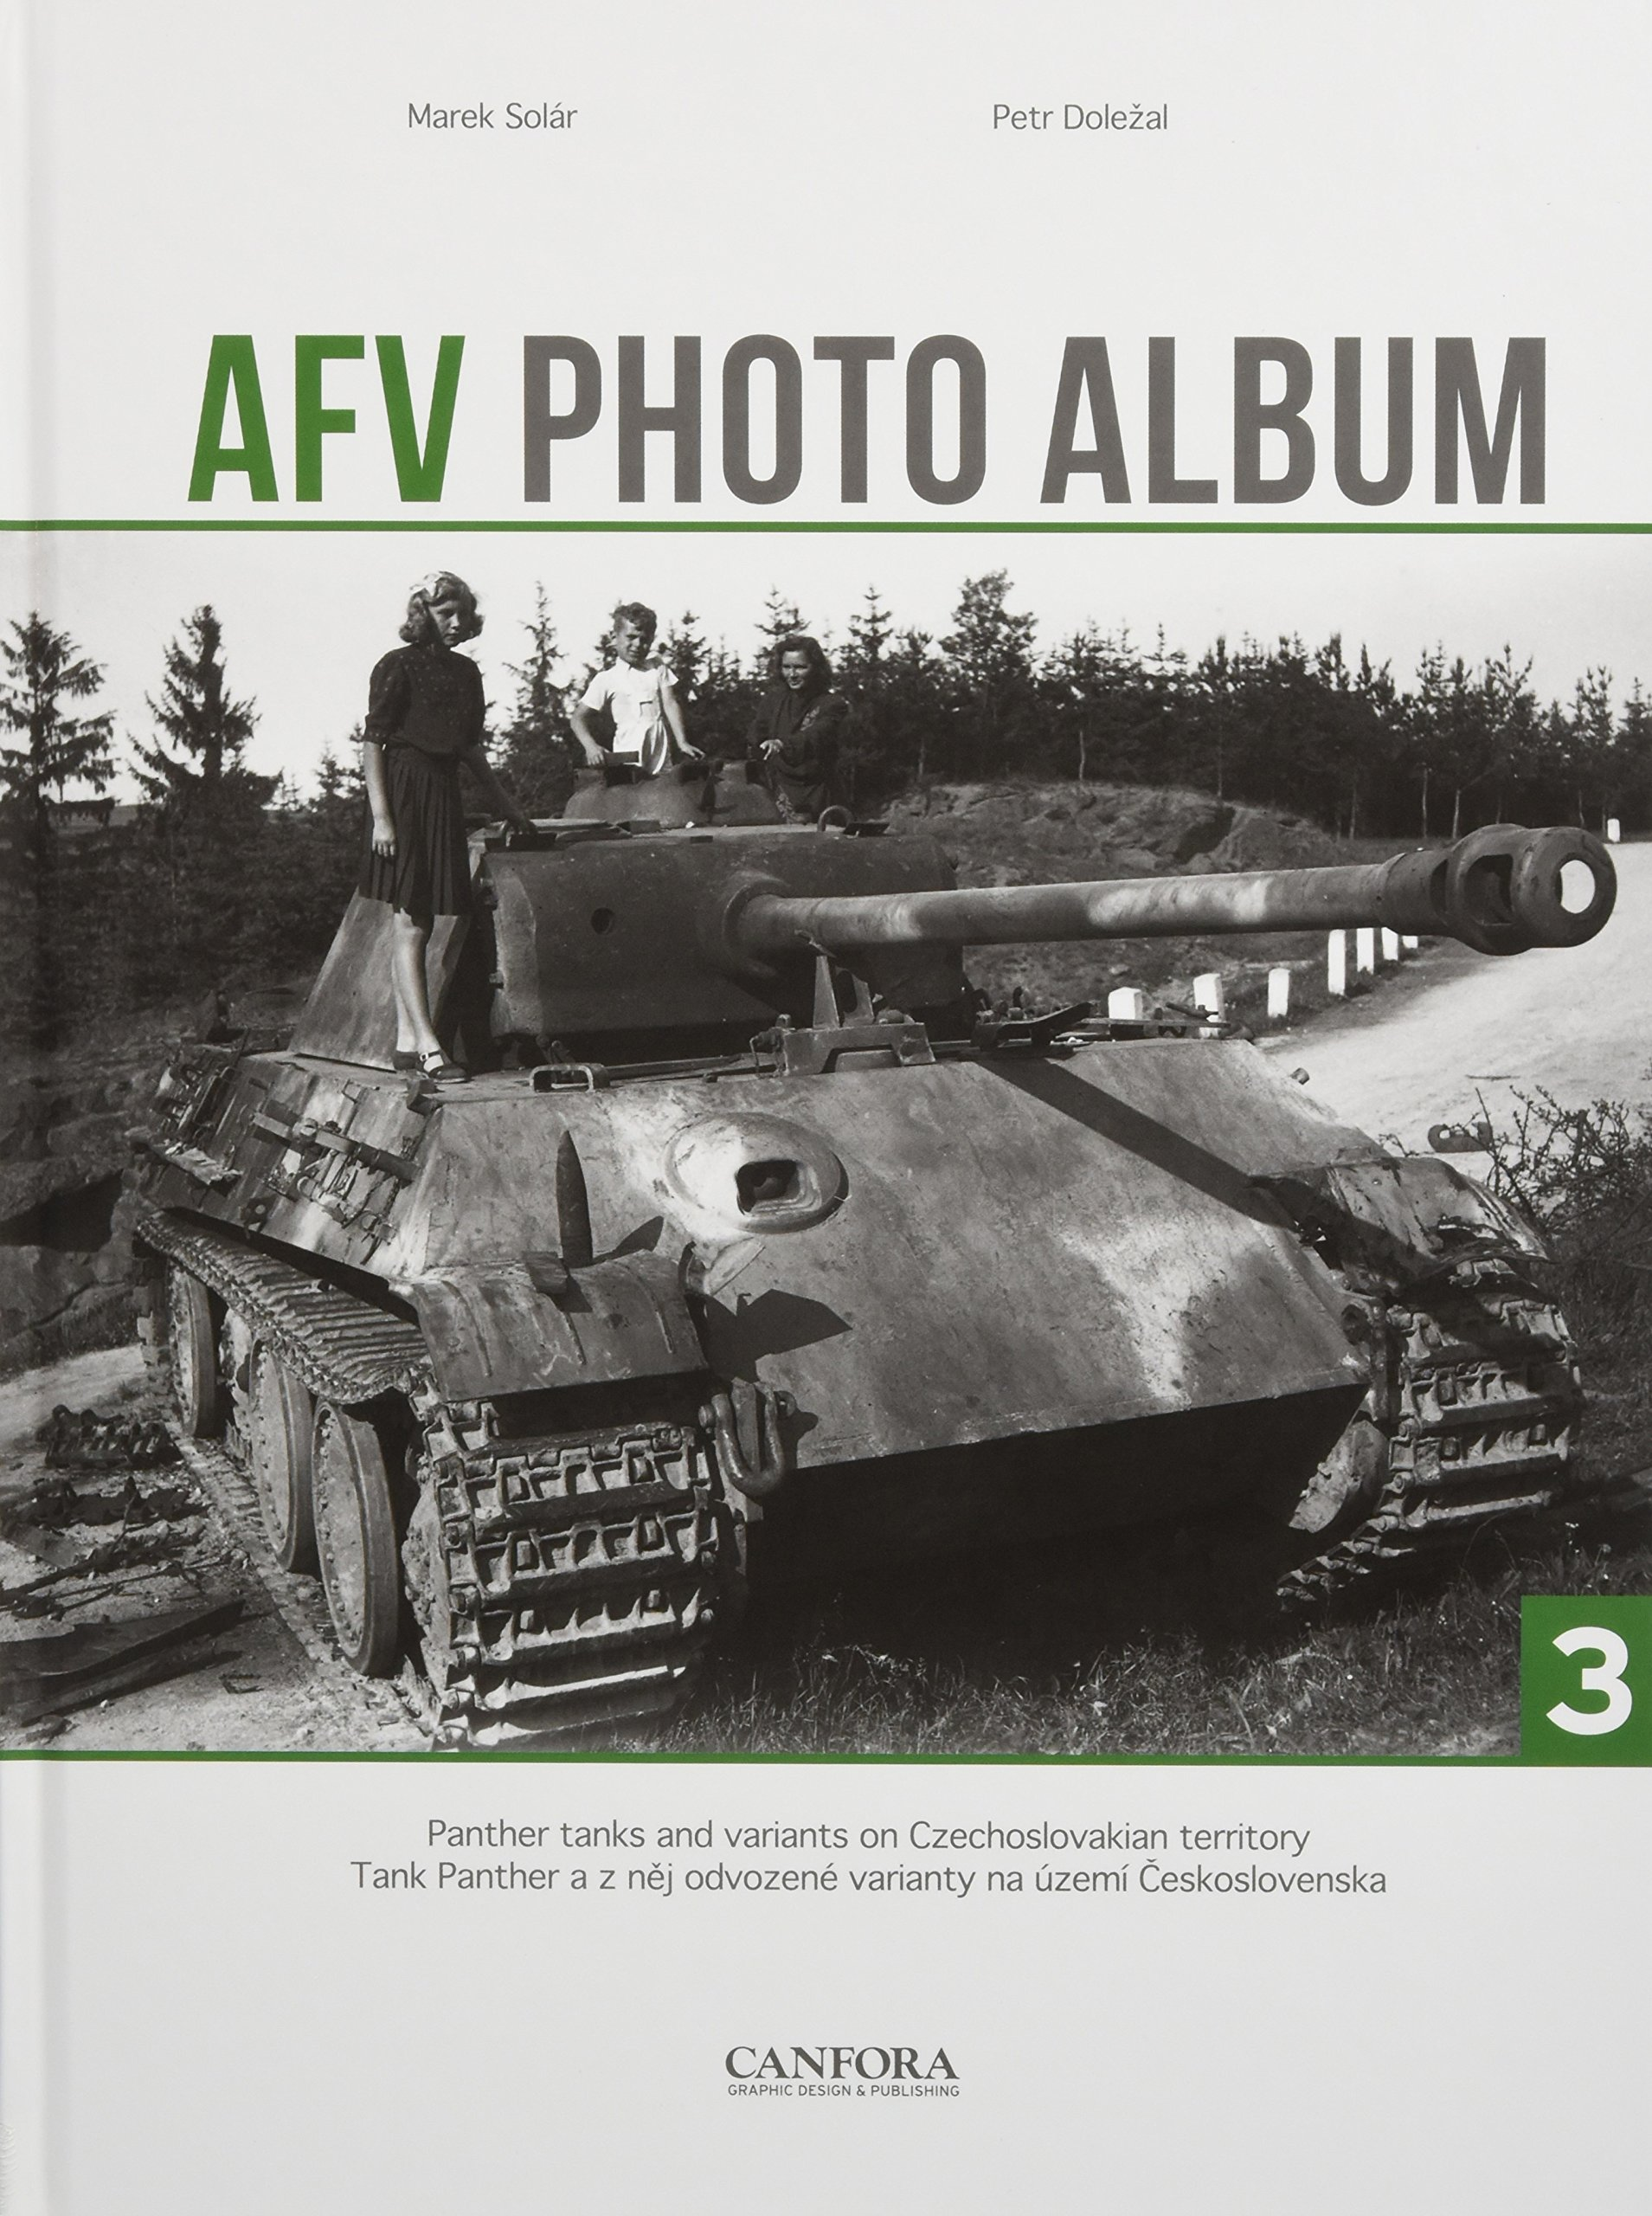 AFV Photo Album: Vol. 3: Panther Tanks and Variants on Czechoslovakian Territory (Czech and English Edition)